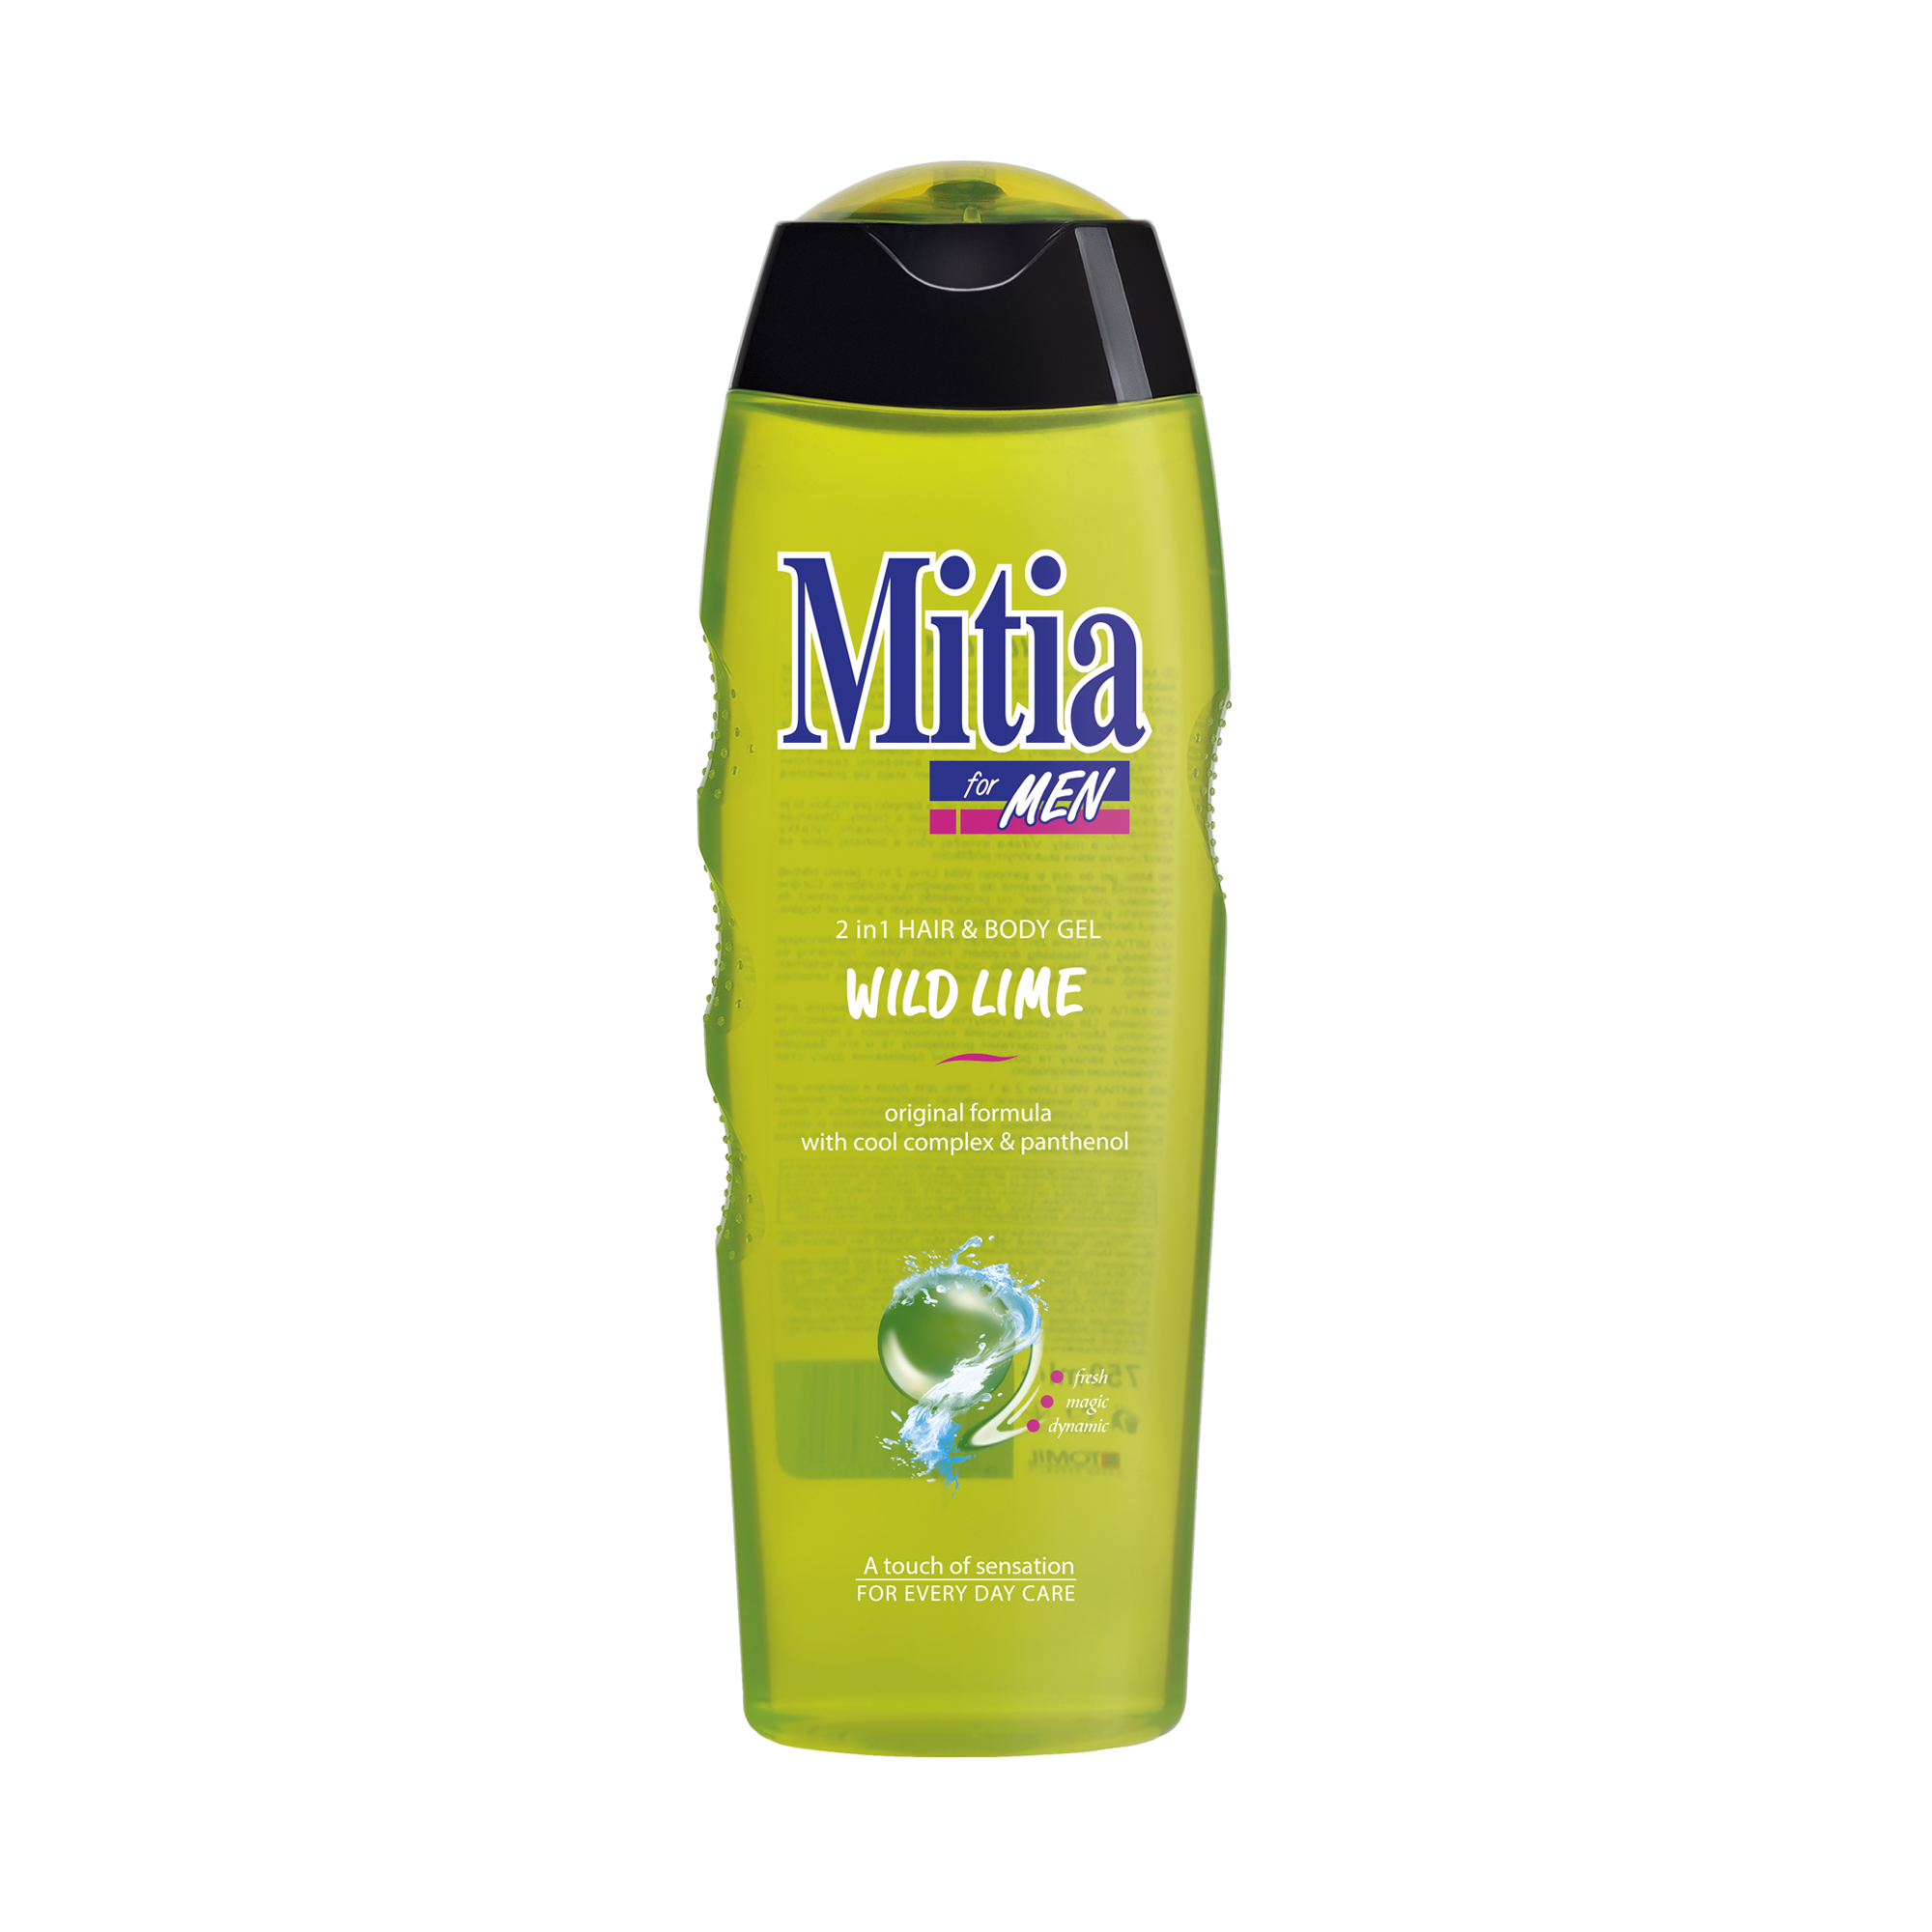 Mitia for men żel pod prysznic Wild Lime